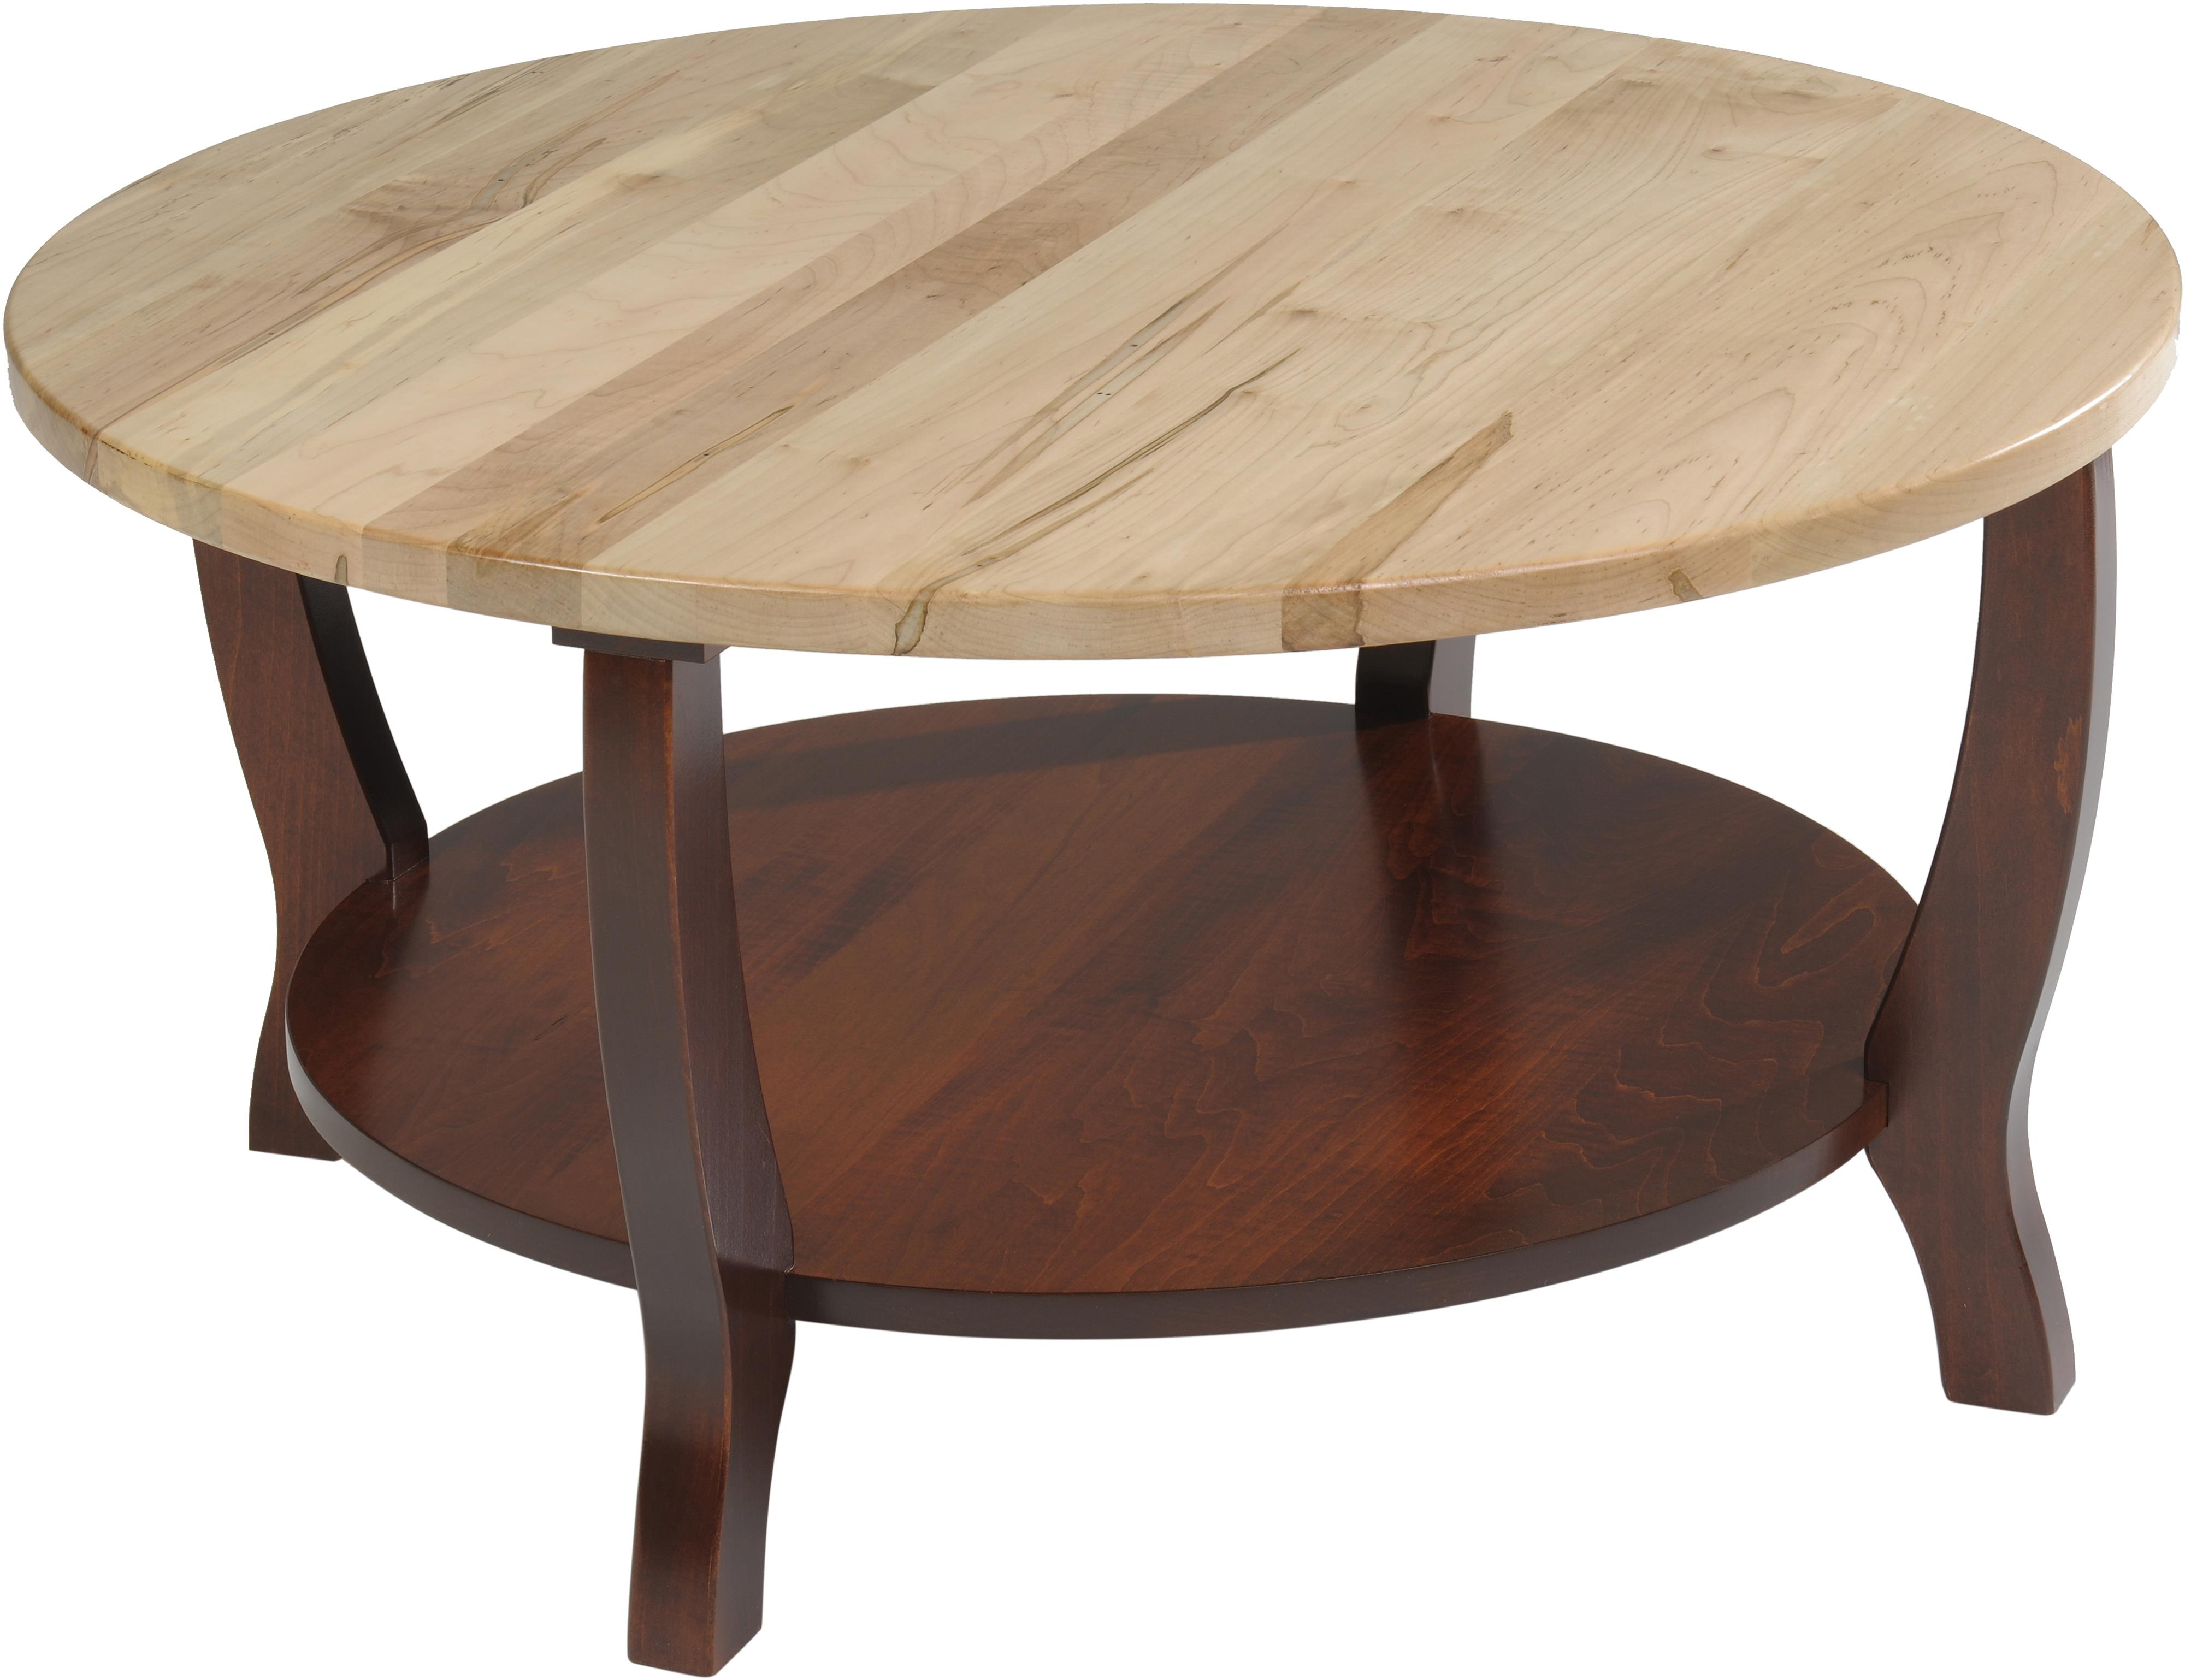 New Port Coffee Table by Y & T Woodcraft at Saugerties Furniture Mart